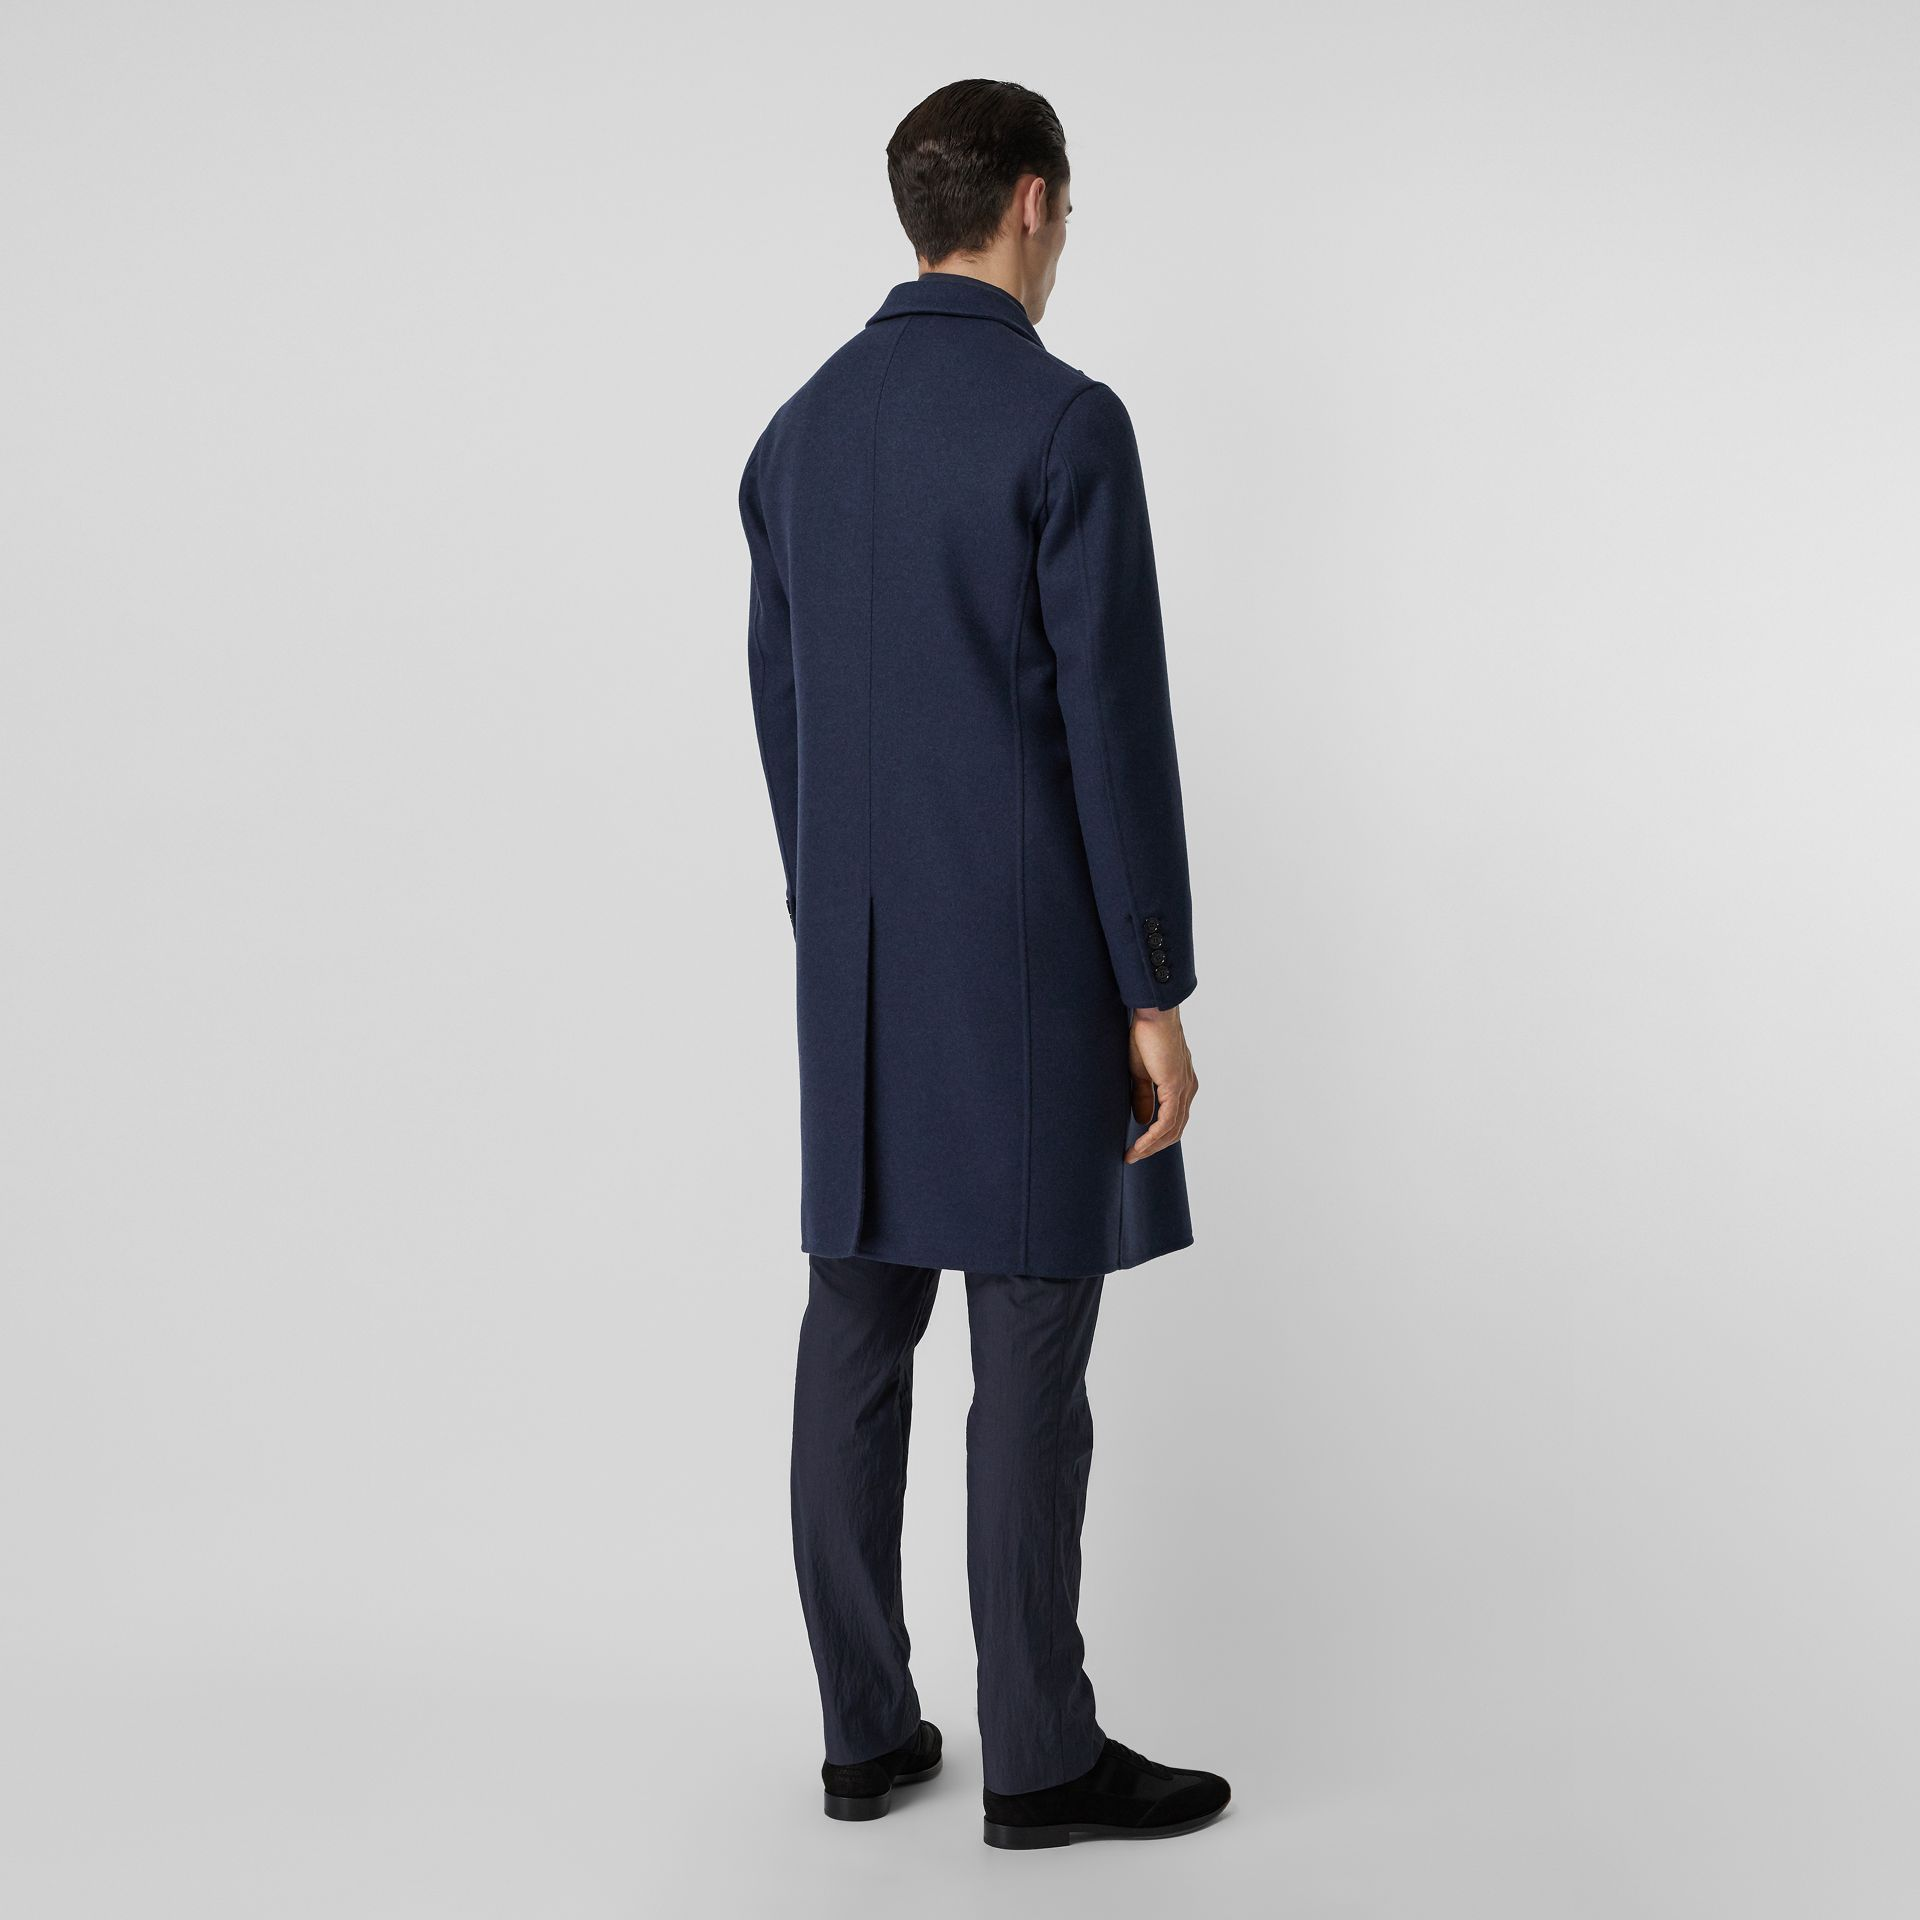 Double-faced Wool Cashmere Tailored Coat in Steel Blue Melange - Men | Burberry - gallery image 2